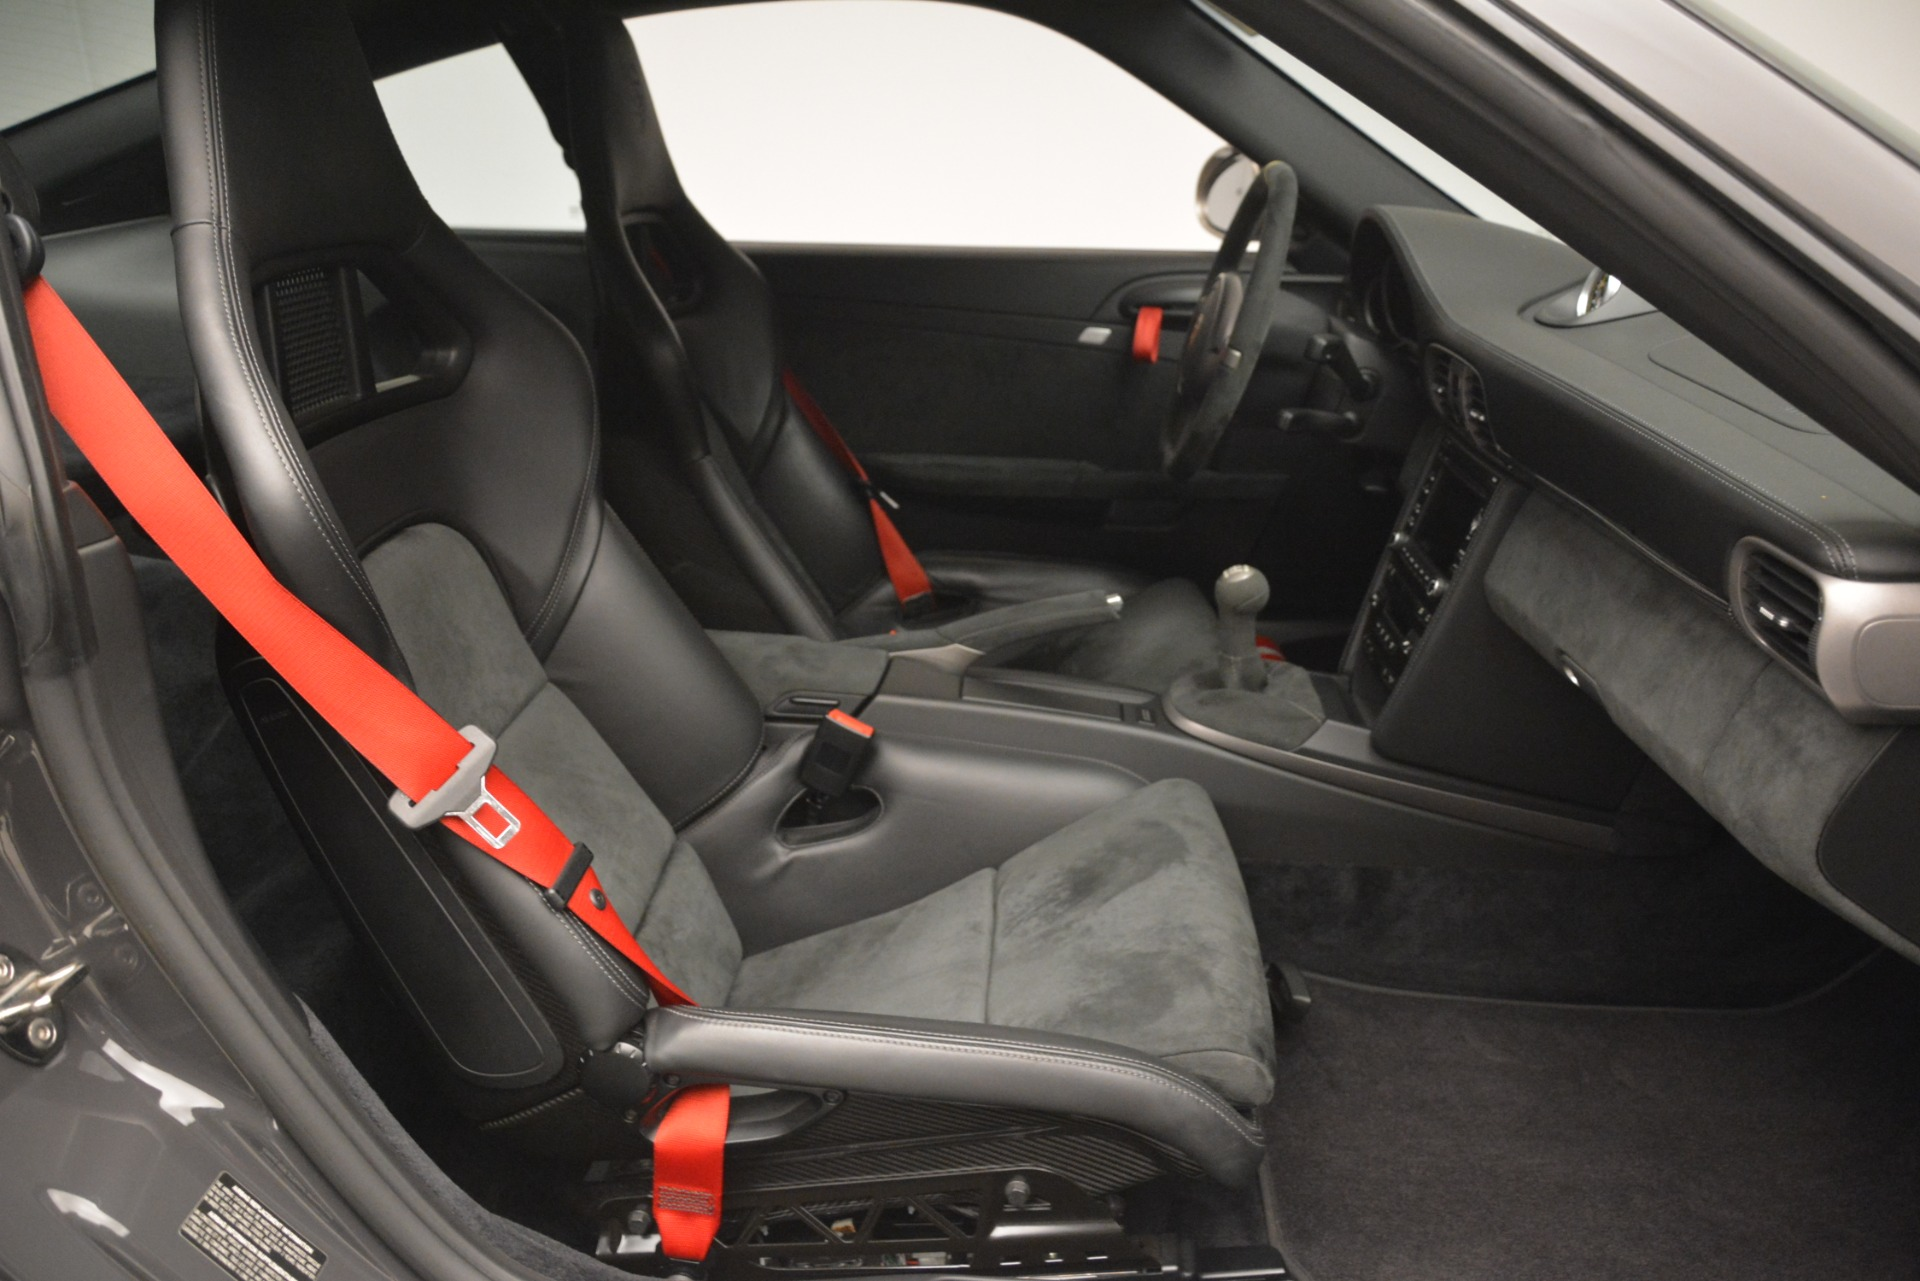 Used 2011 Porsche 911 GT3 RS For Sale In Westport, CT 3012_p19